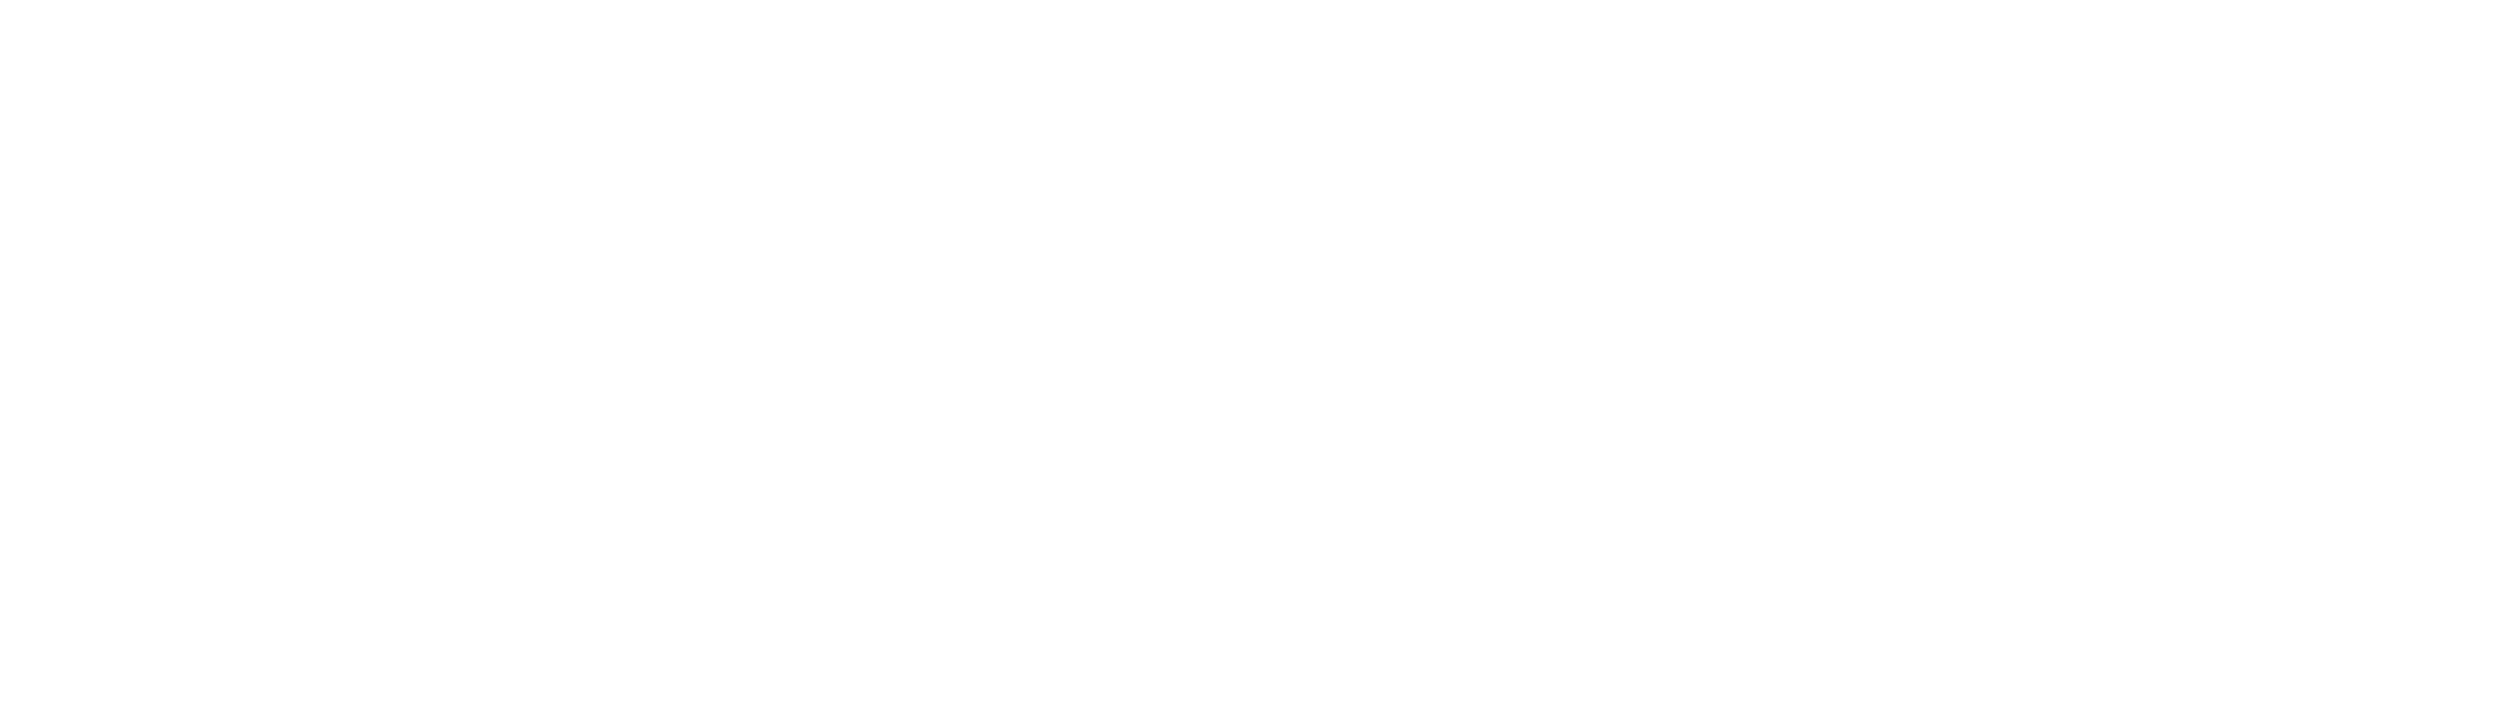 Arbor Crossing Apartments